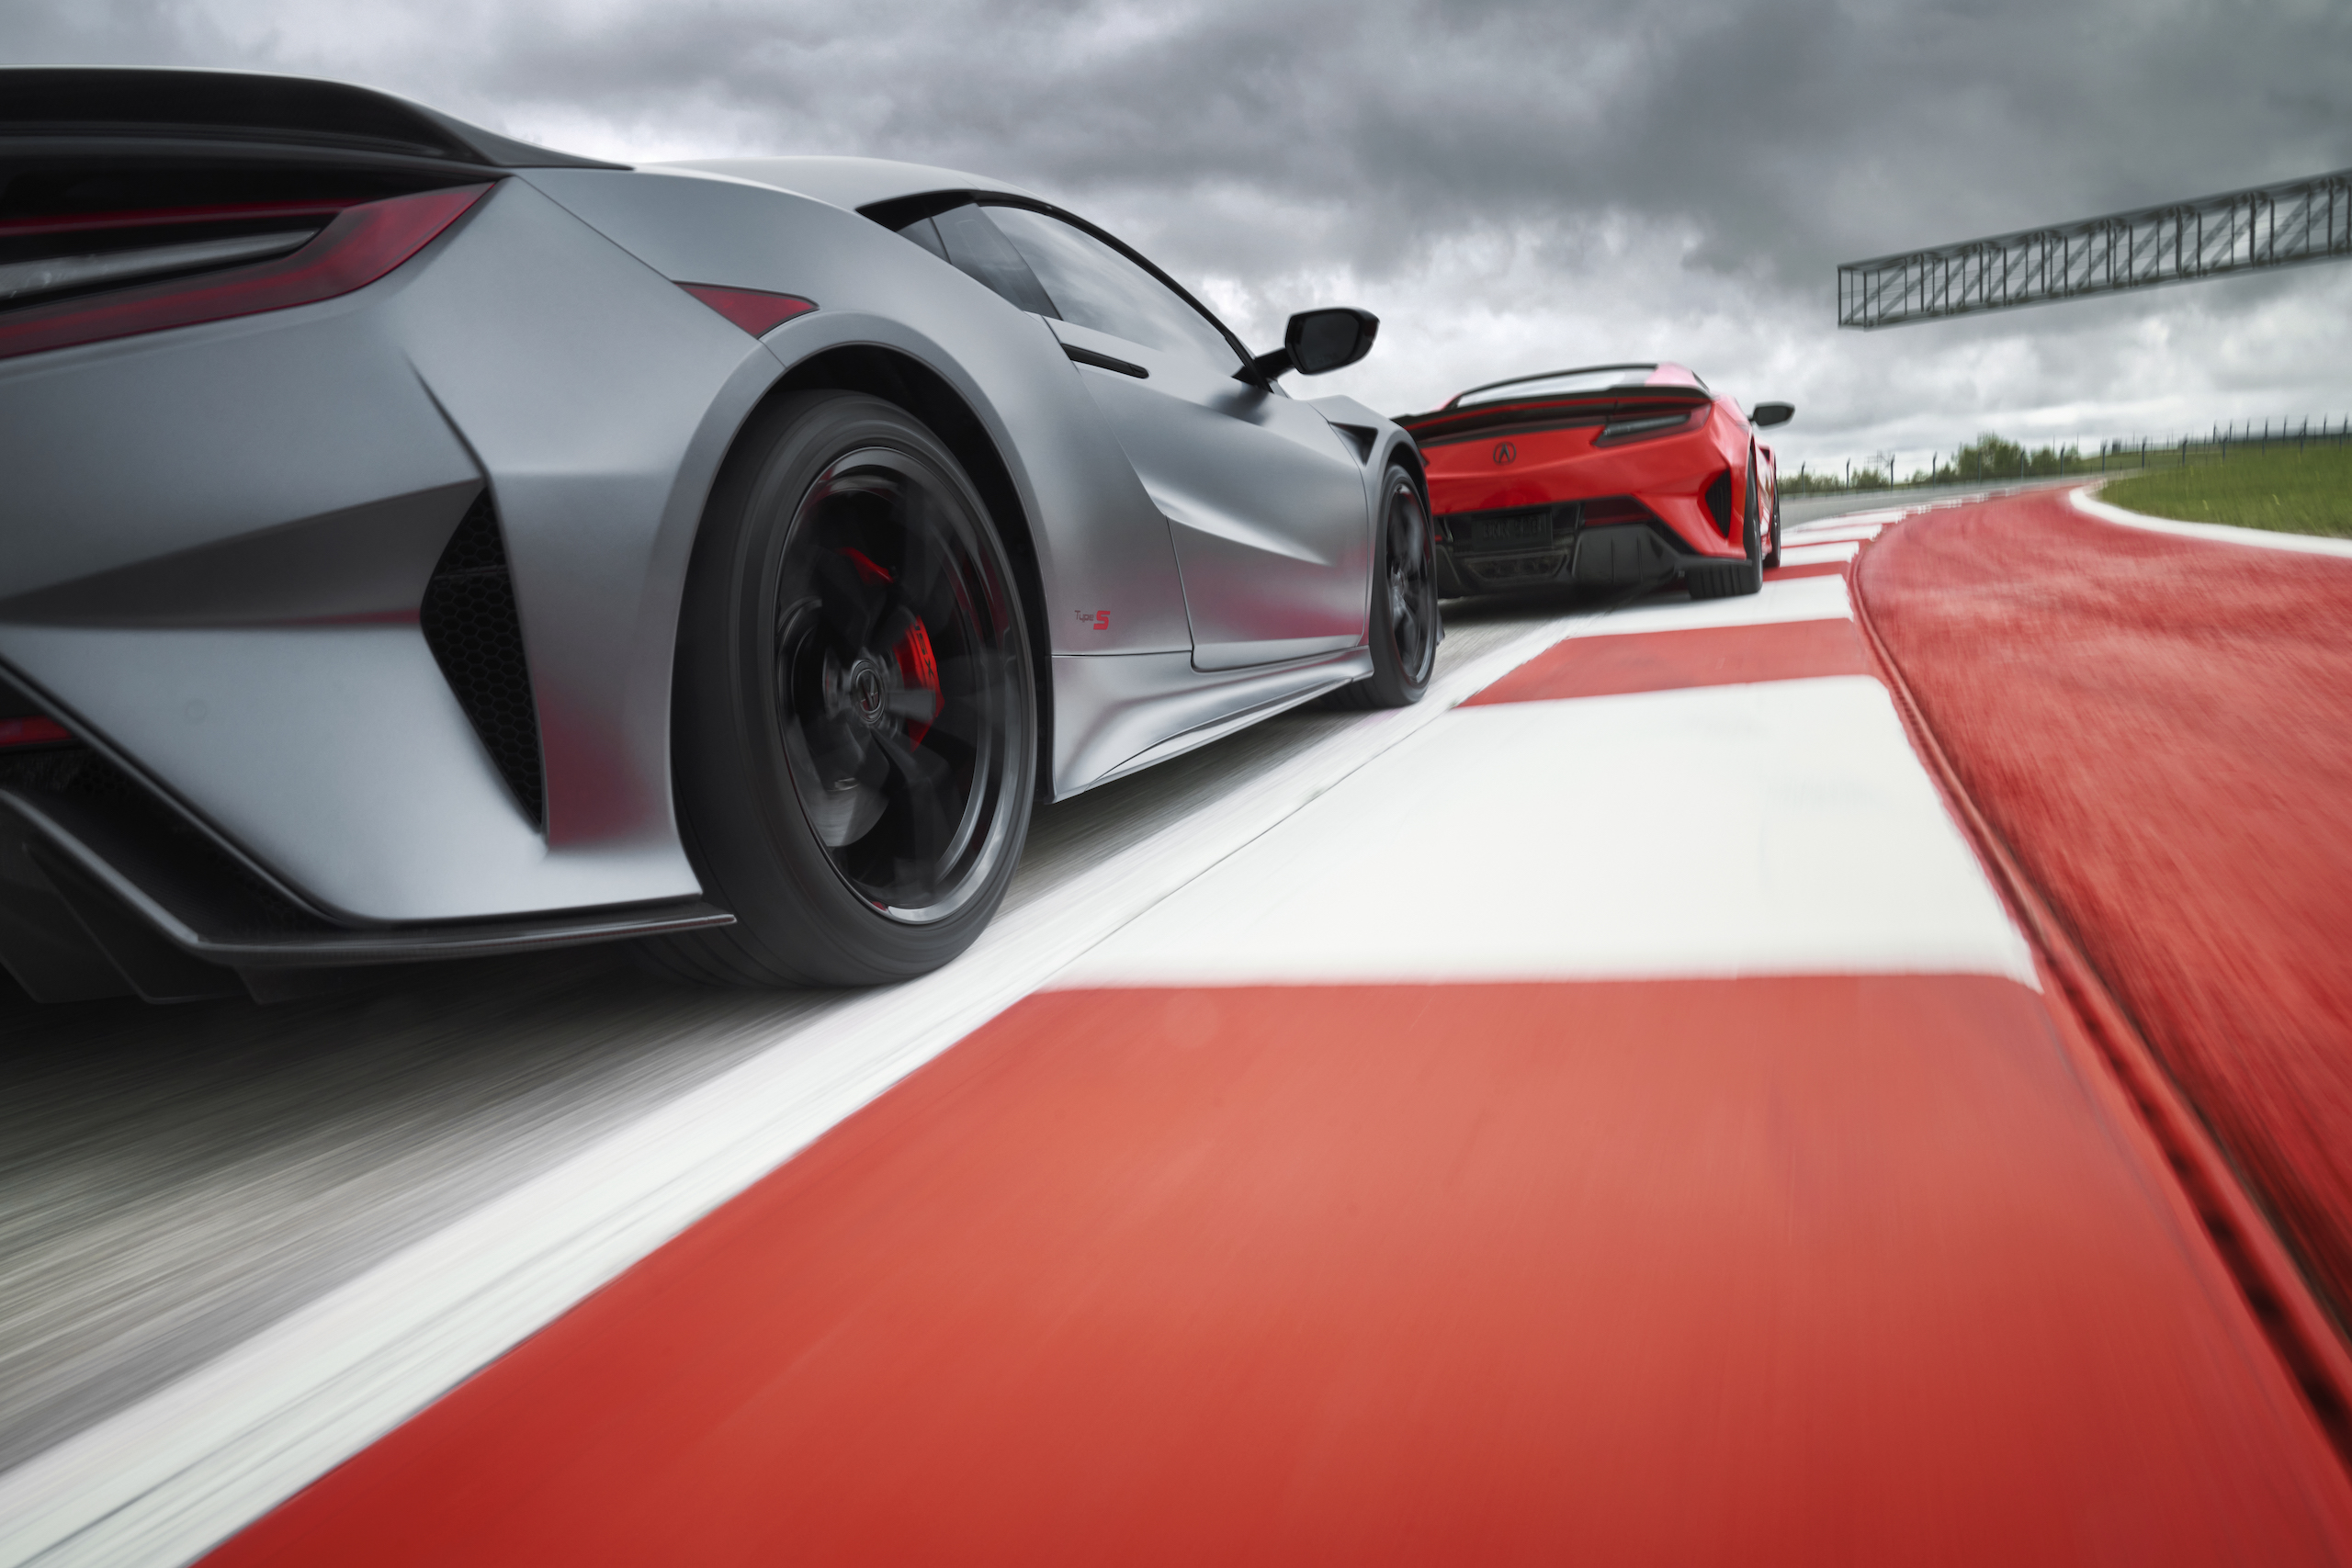 2022 Acura NSX Type S grey and red rear track action